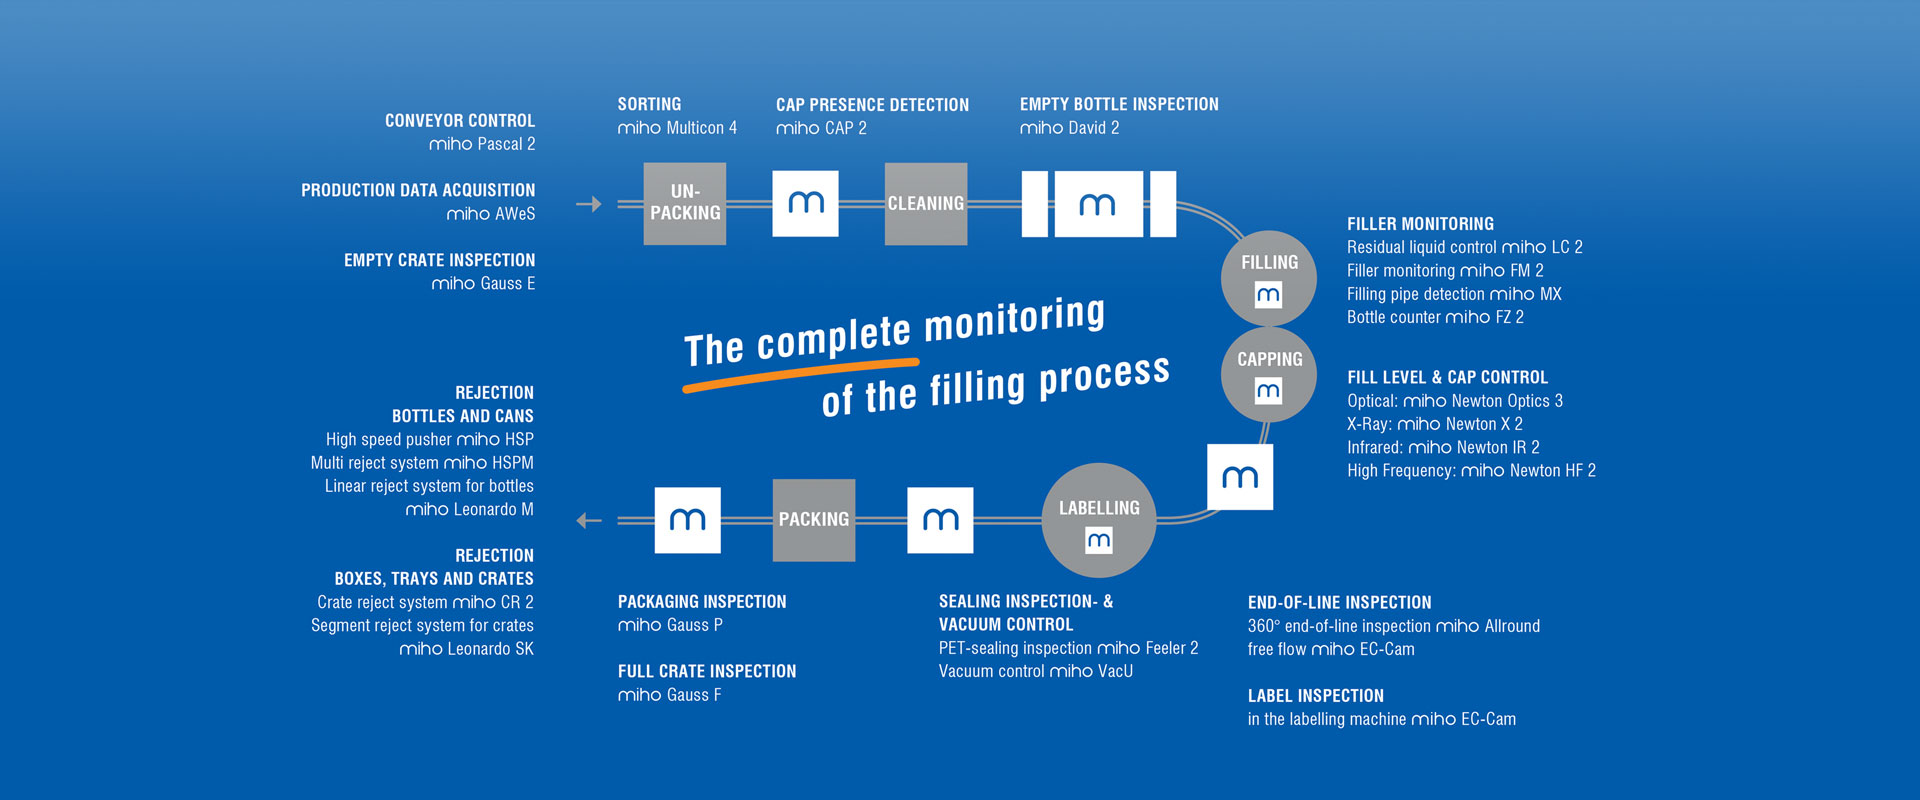 The complete monitorin in the filling process